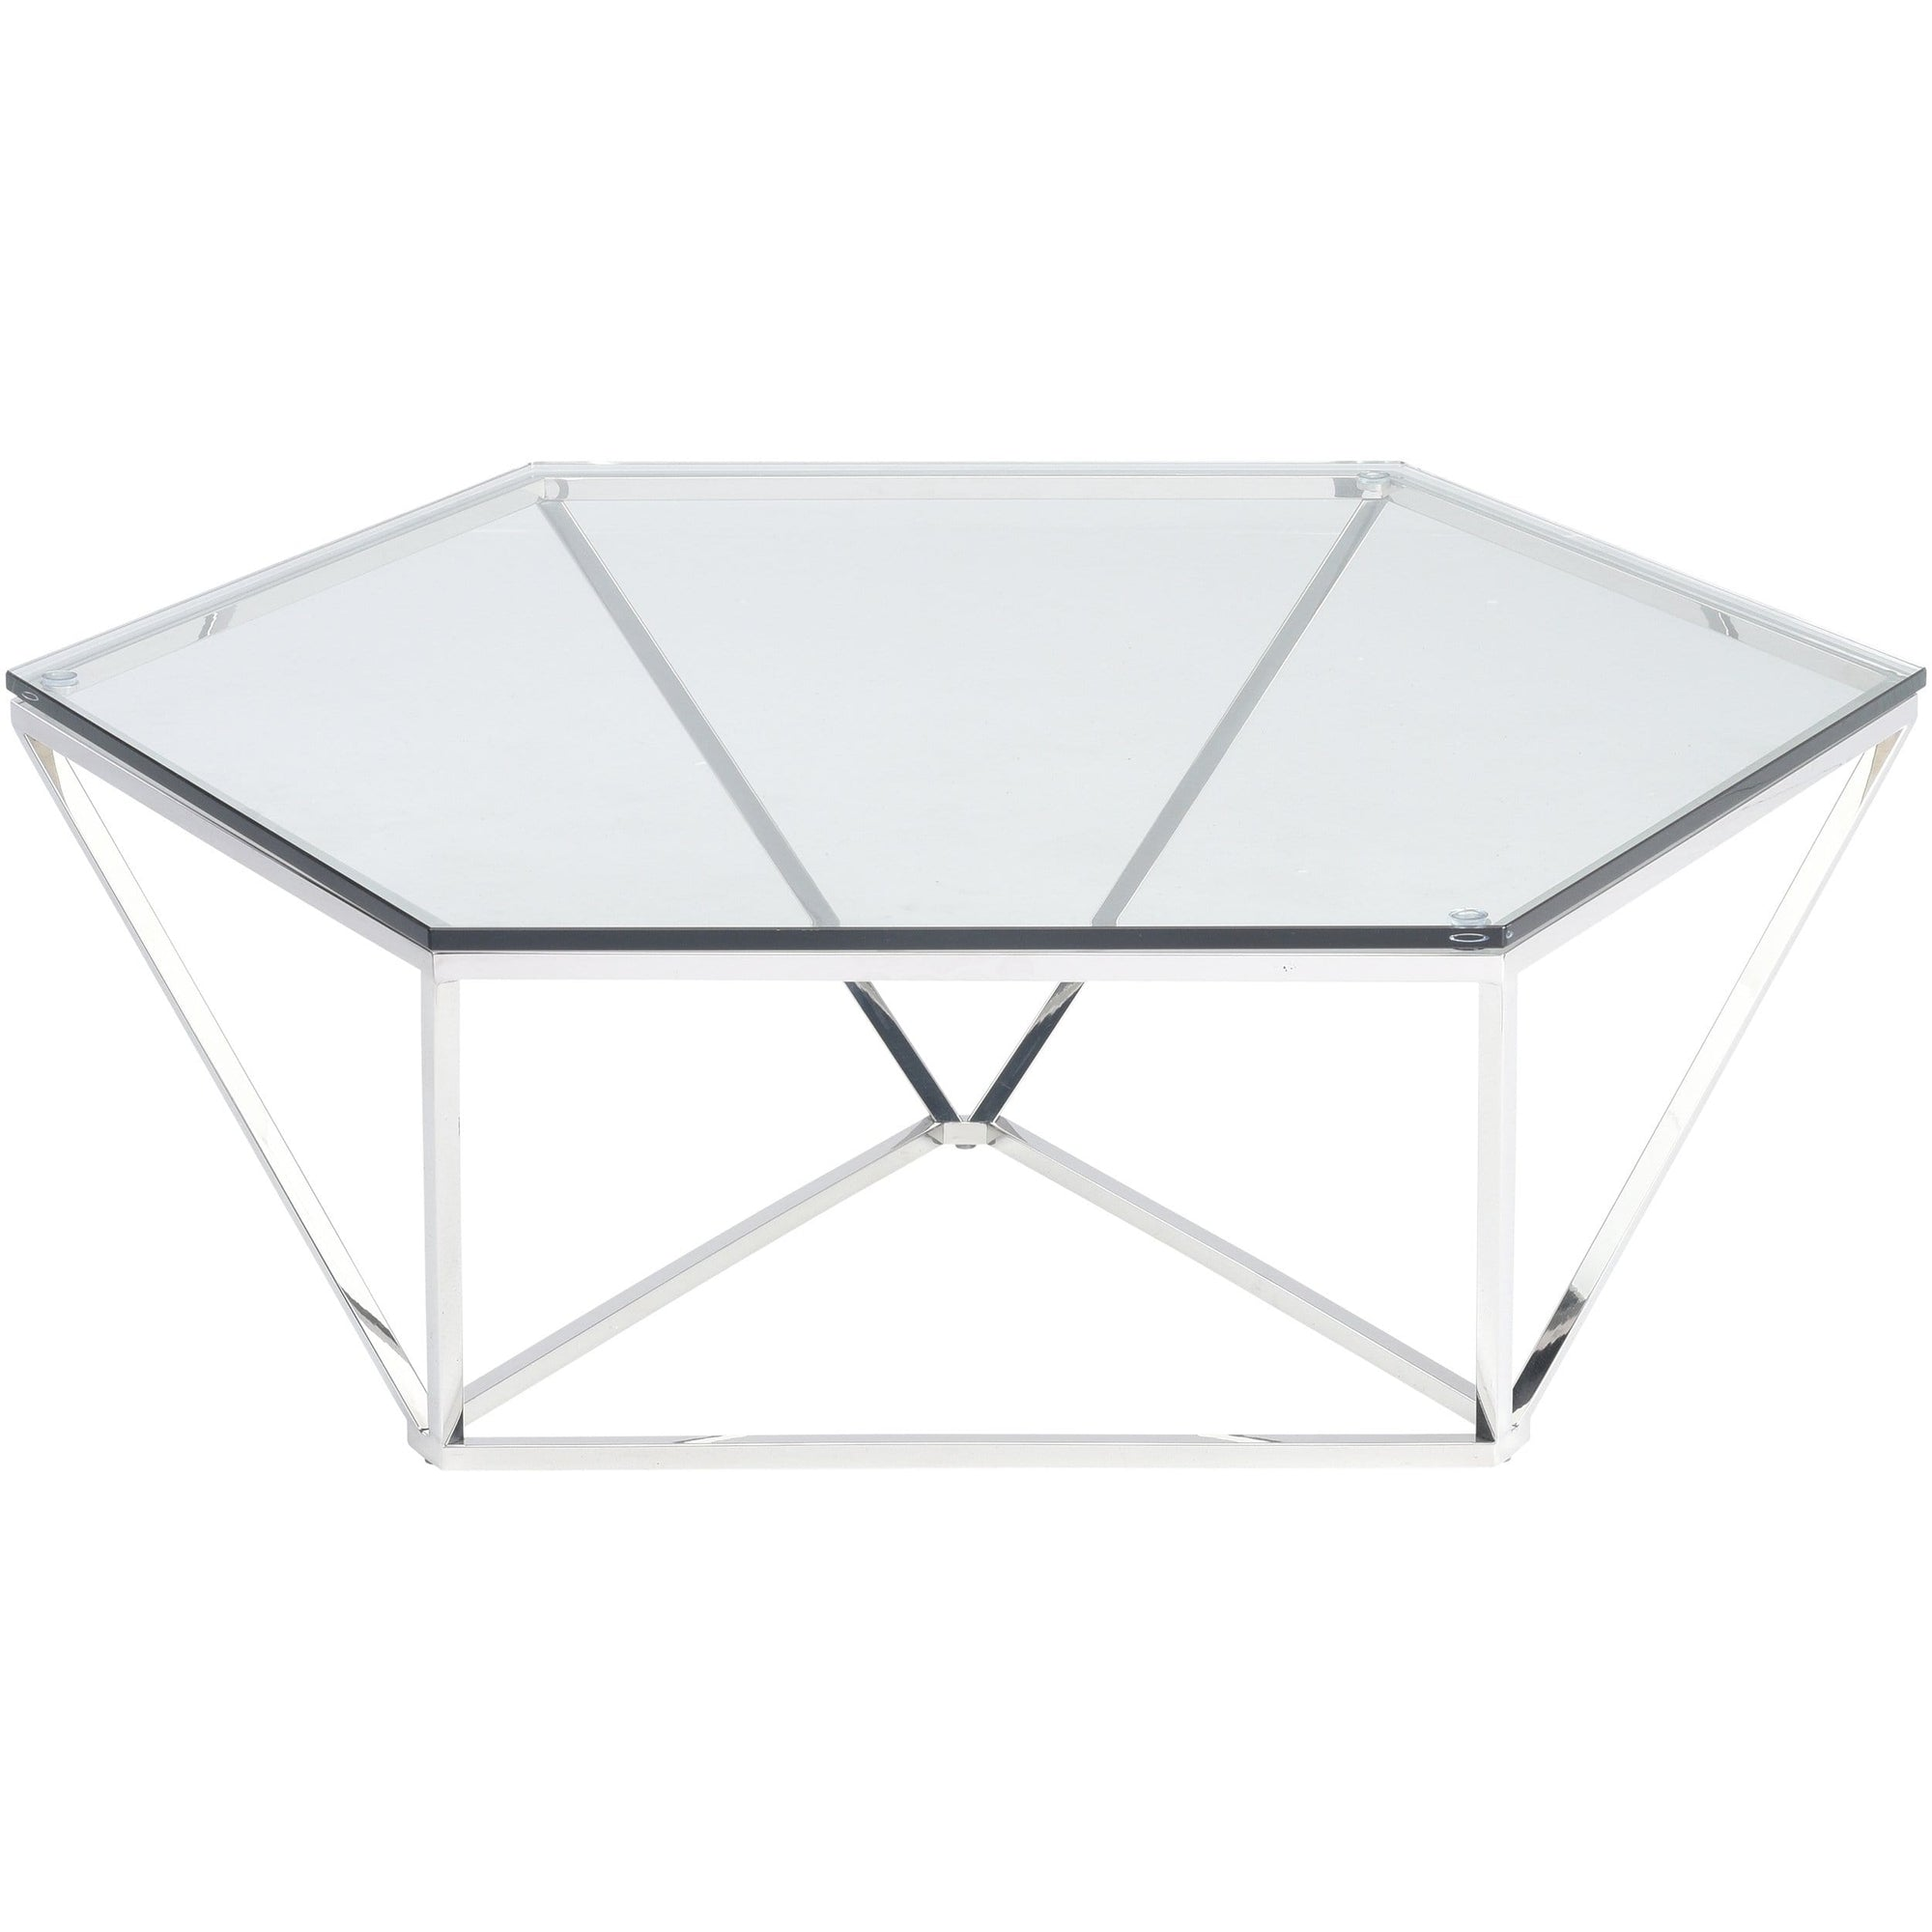 Awesome Louisa Coffee Table Polished Stainless Andrewgaddart Wooden Chair Designs For Living Room Andrewgaddartcom